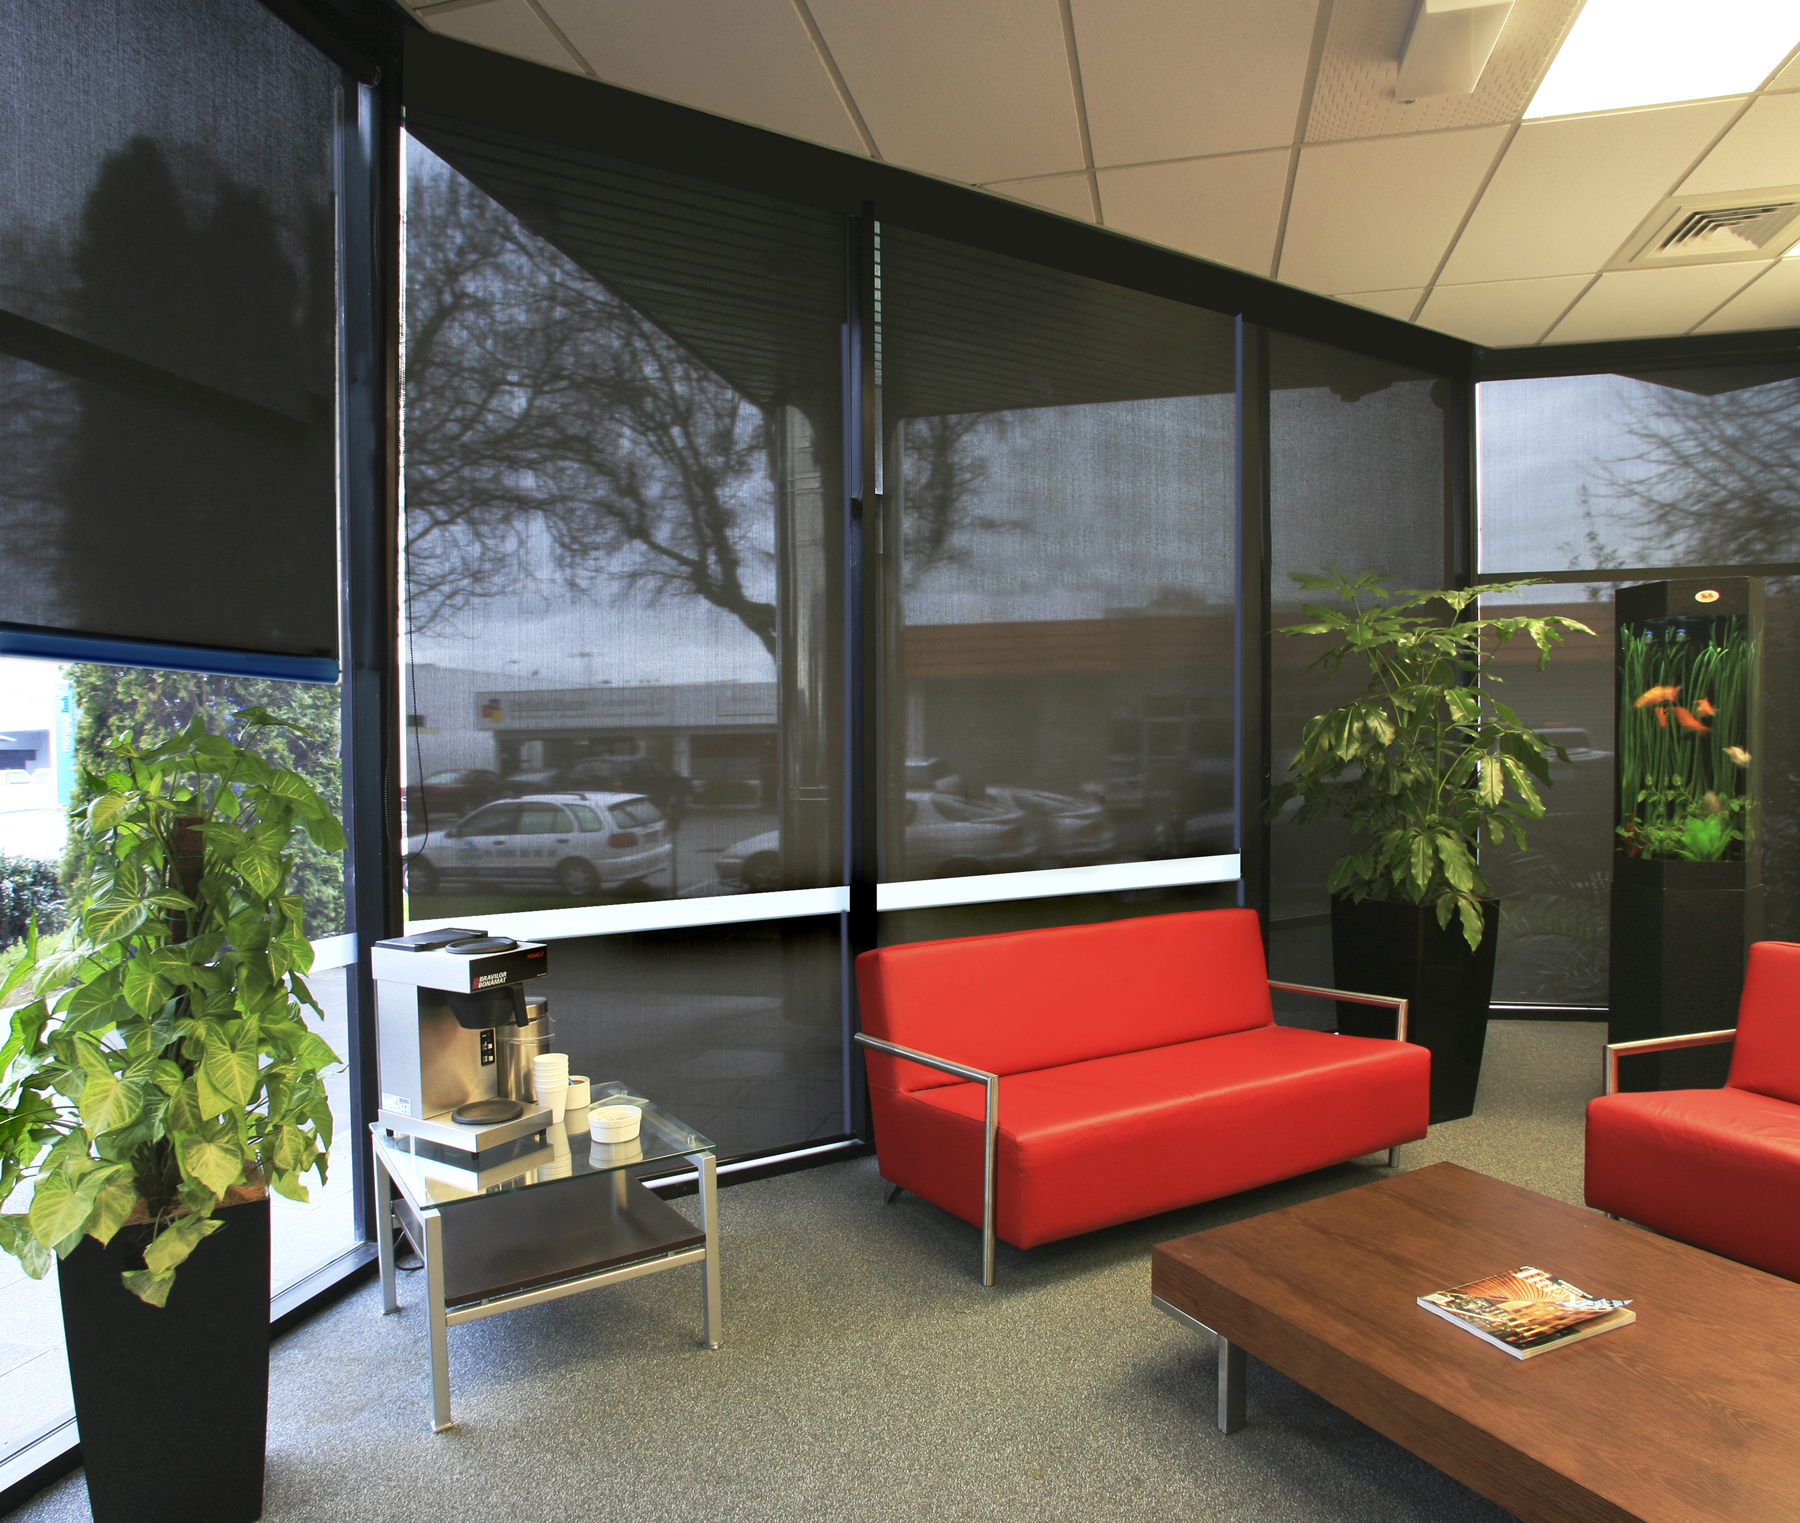 Commercial and business solar shades